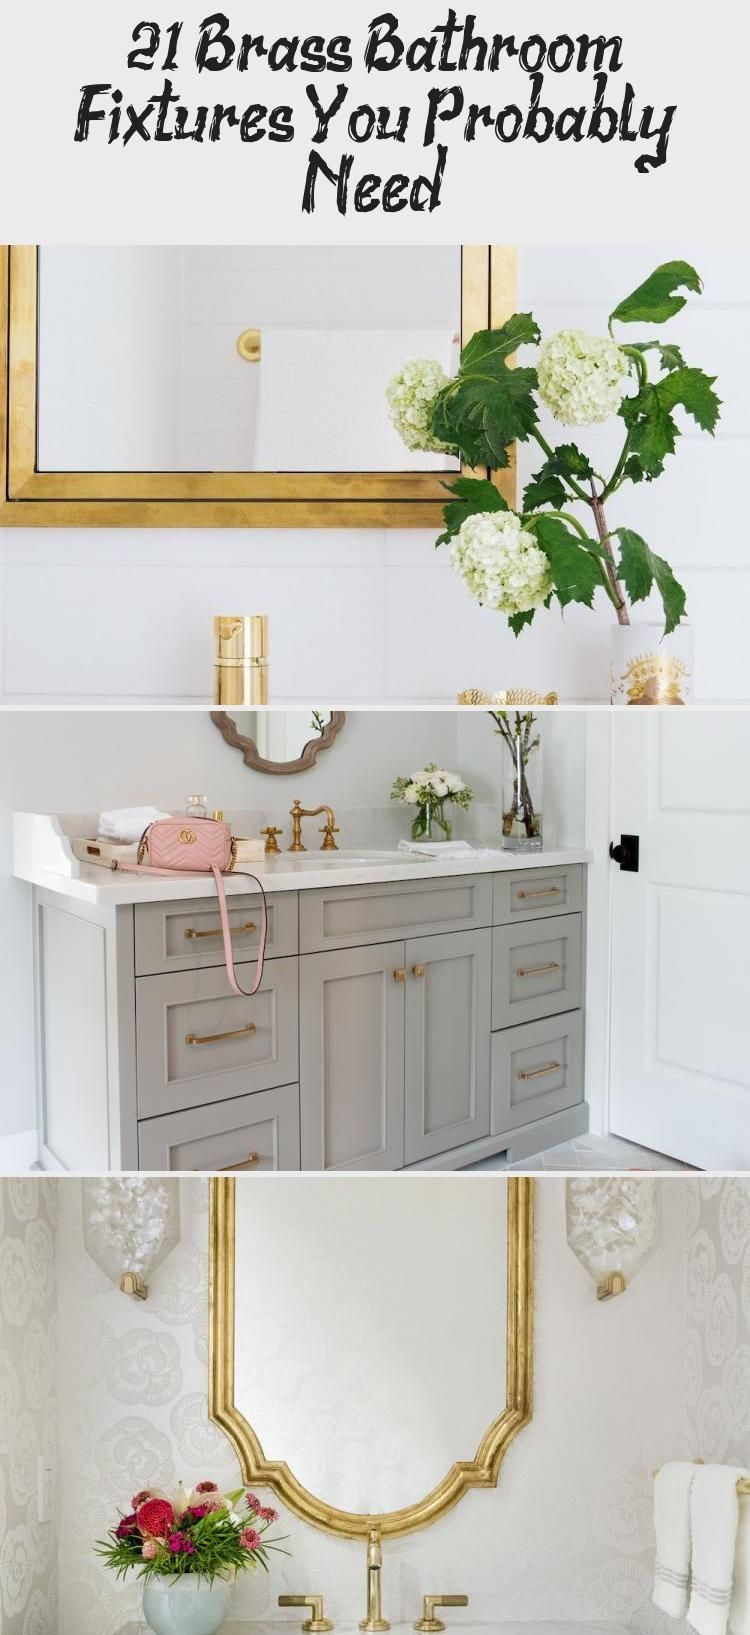 Photo of 21 brass bathroom taps you'll probably need – decorations